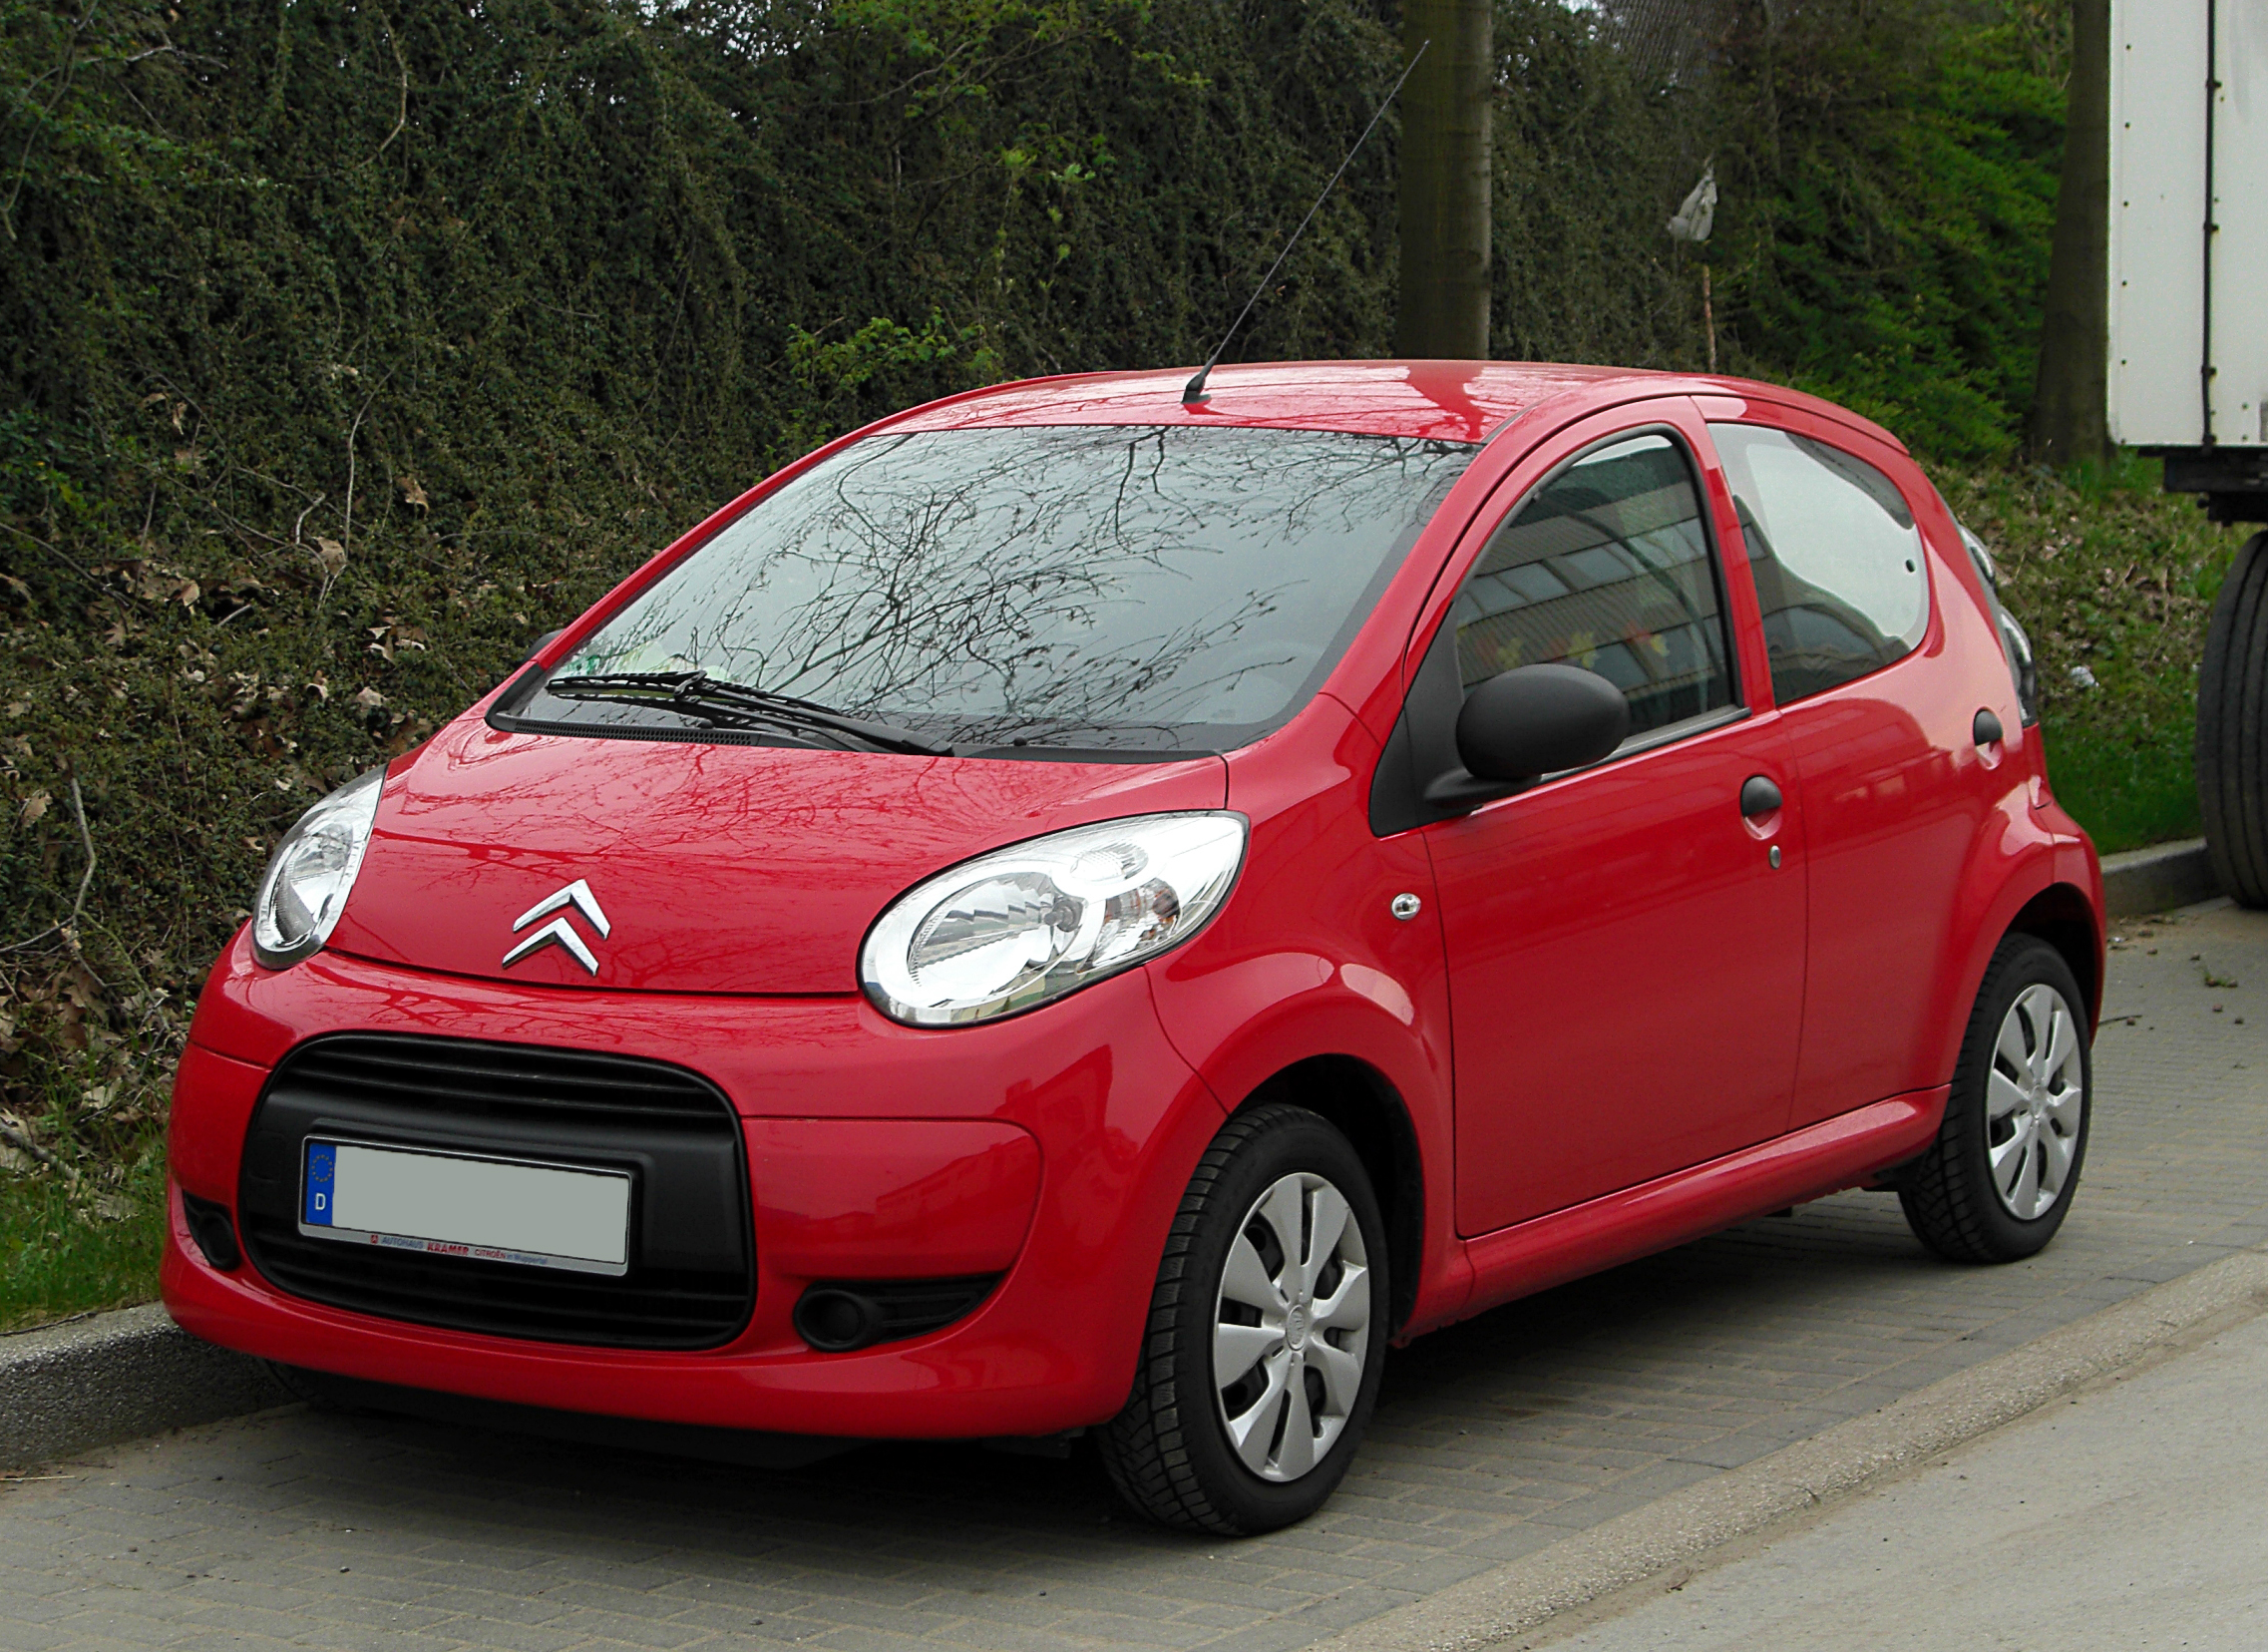 Description Citroën C1 1.0 (Facelift) – Frontansicht, 7. April 2011 ...